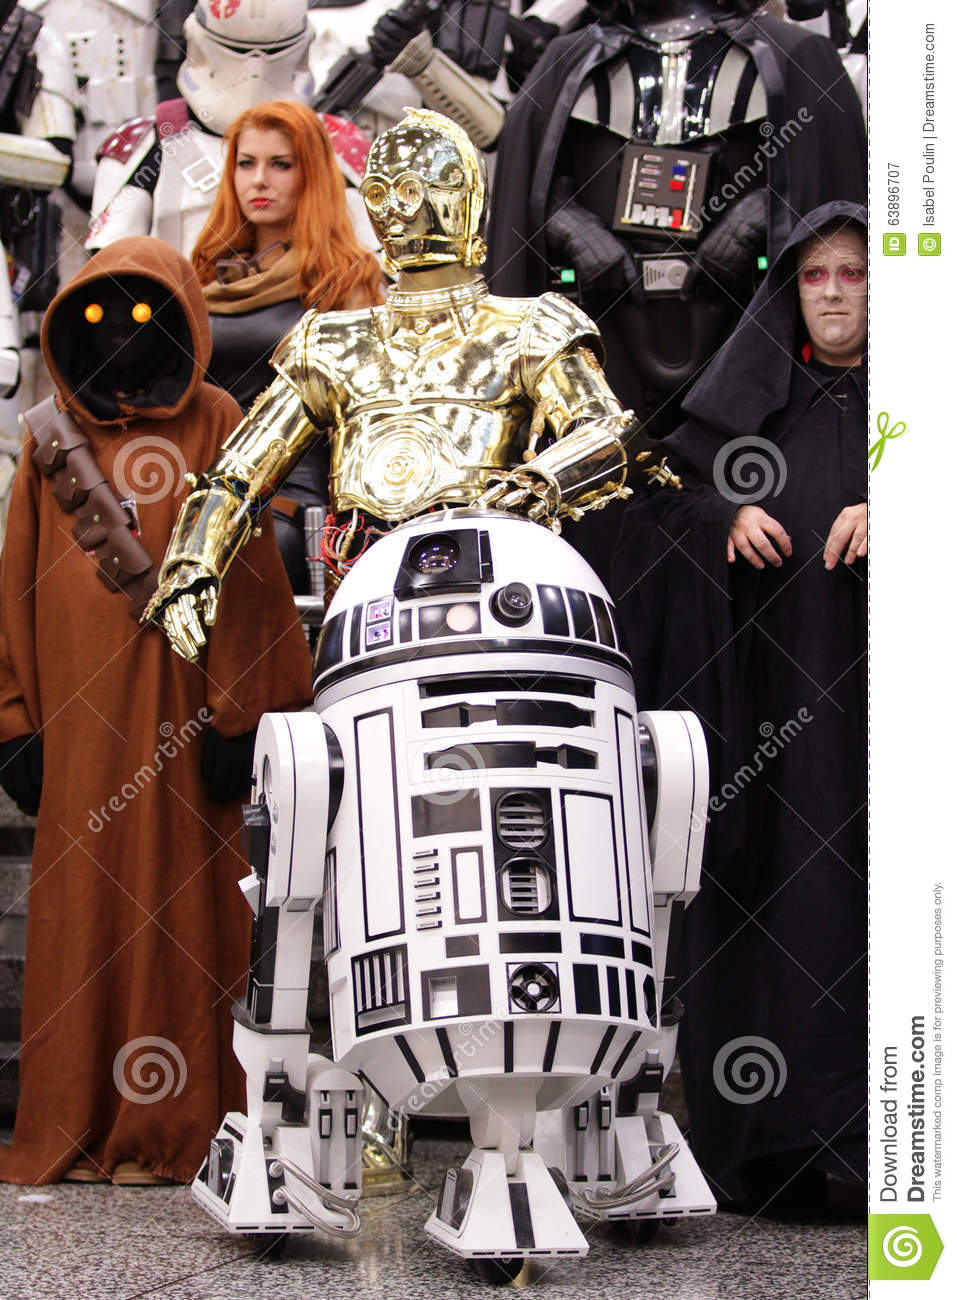 Star wars personnage at comic con in montreal editorial - Personnage star wars 7 ...